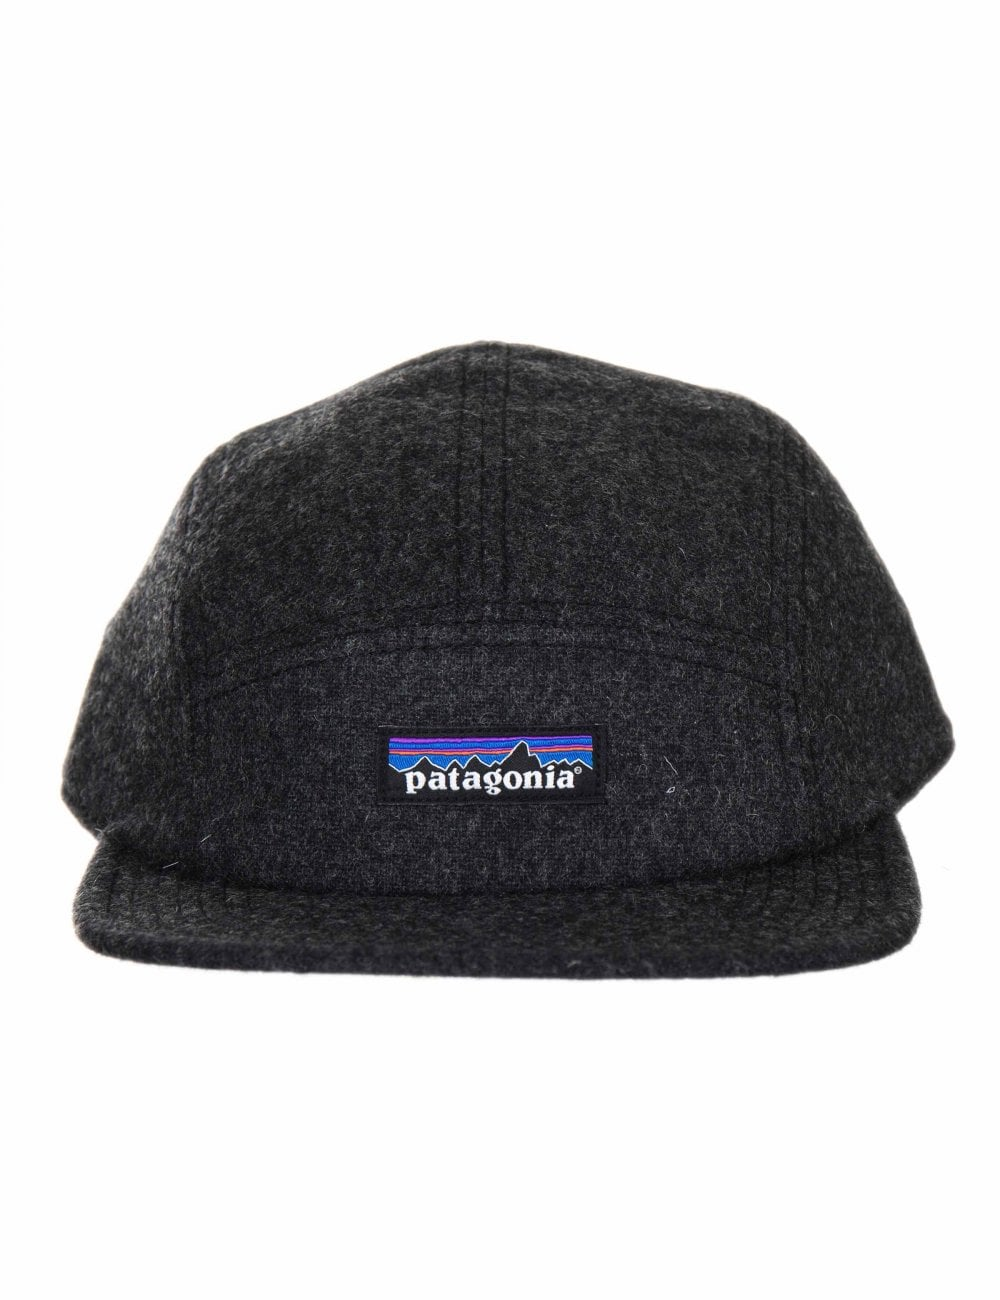 Patagonia Recycled Wool 5 Panel Cap - Forge Grey - Accessories from ... e95e05ab3ff